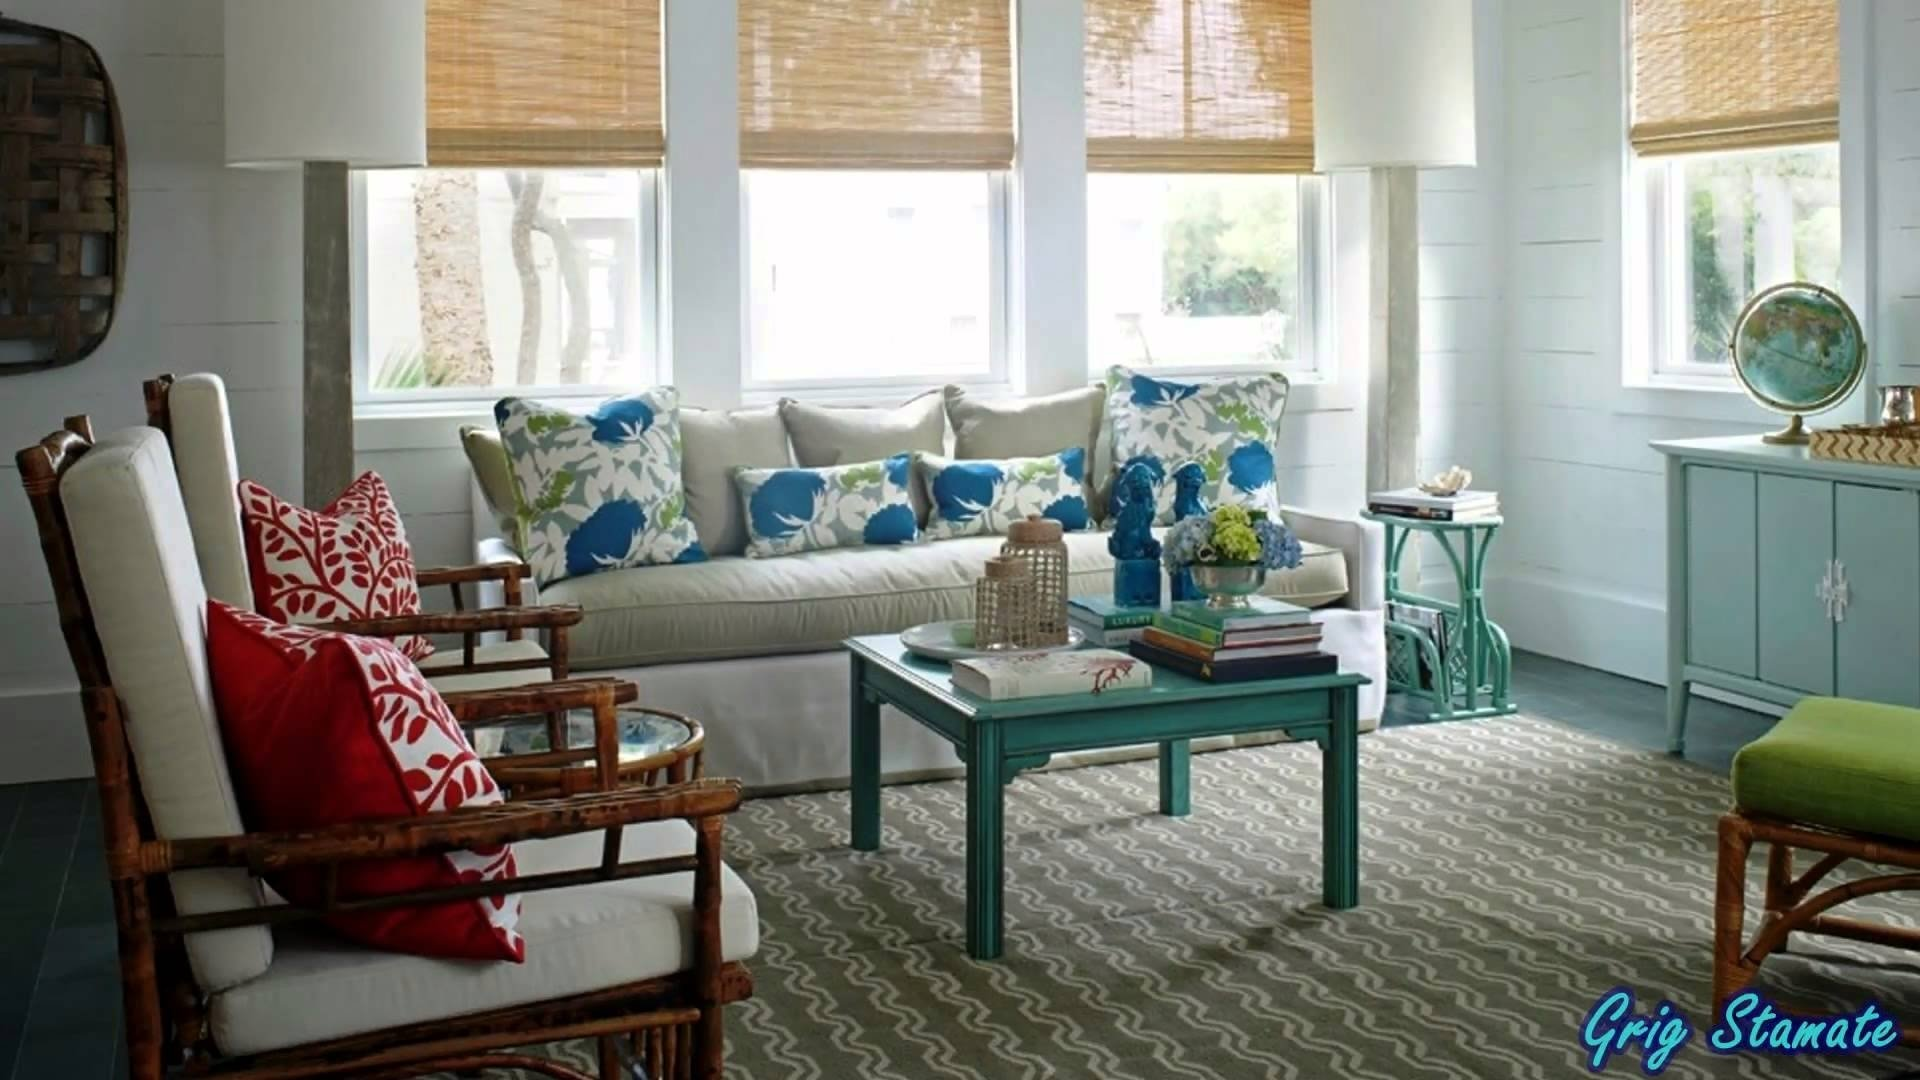 10 Awesome Living Room Ideas For Cheap living rooms on a budget living room decorating ideas youtube 6 2020